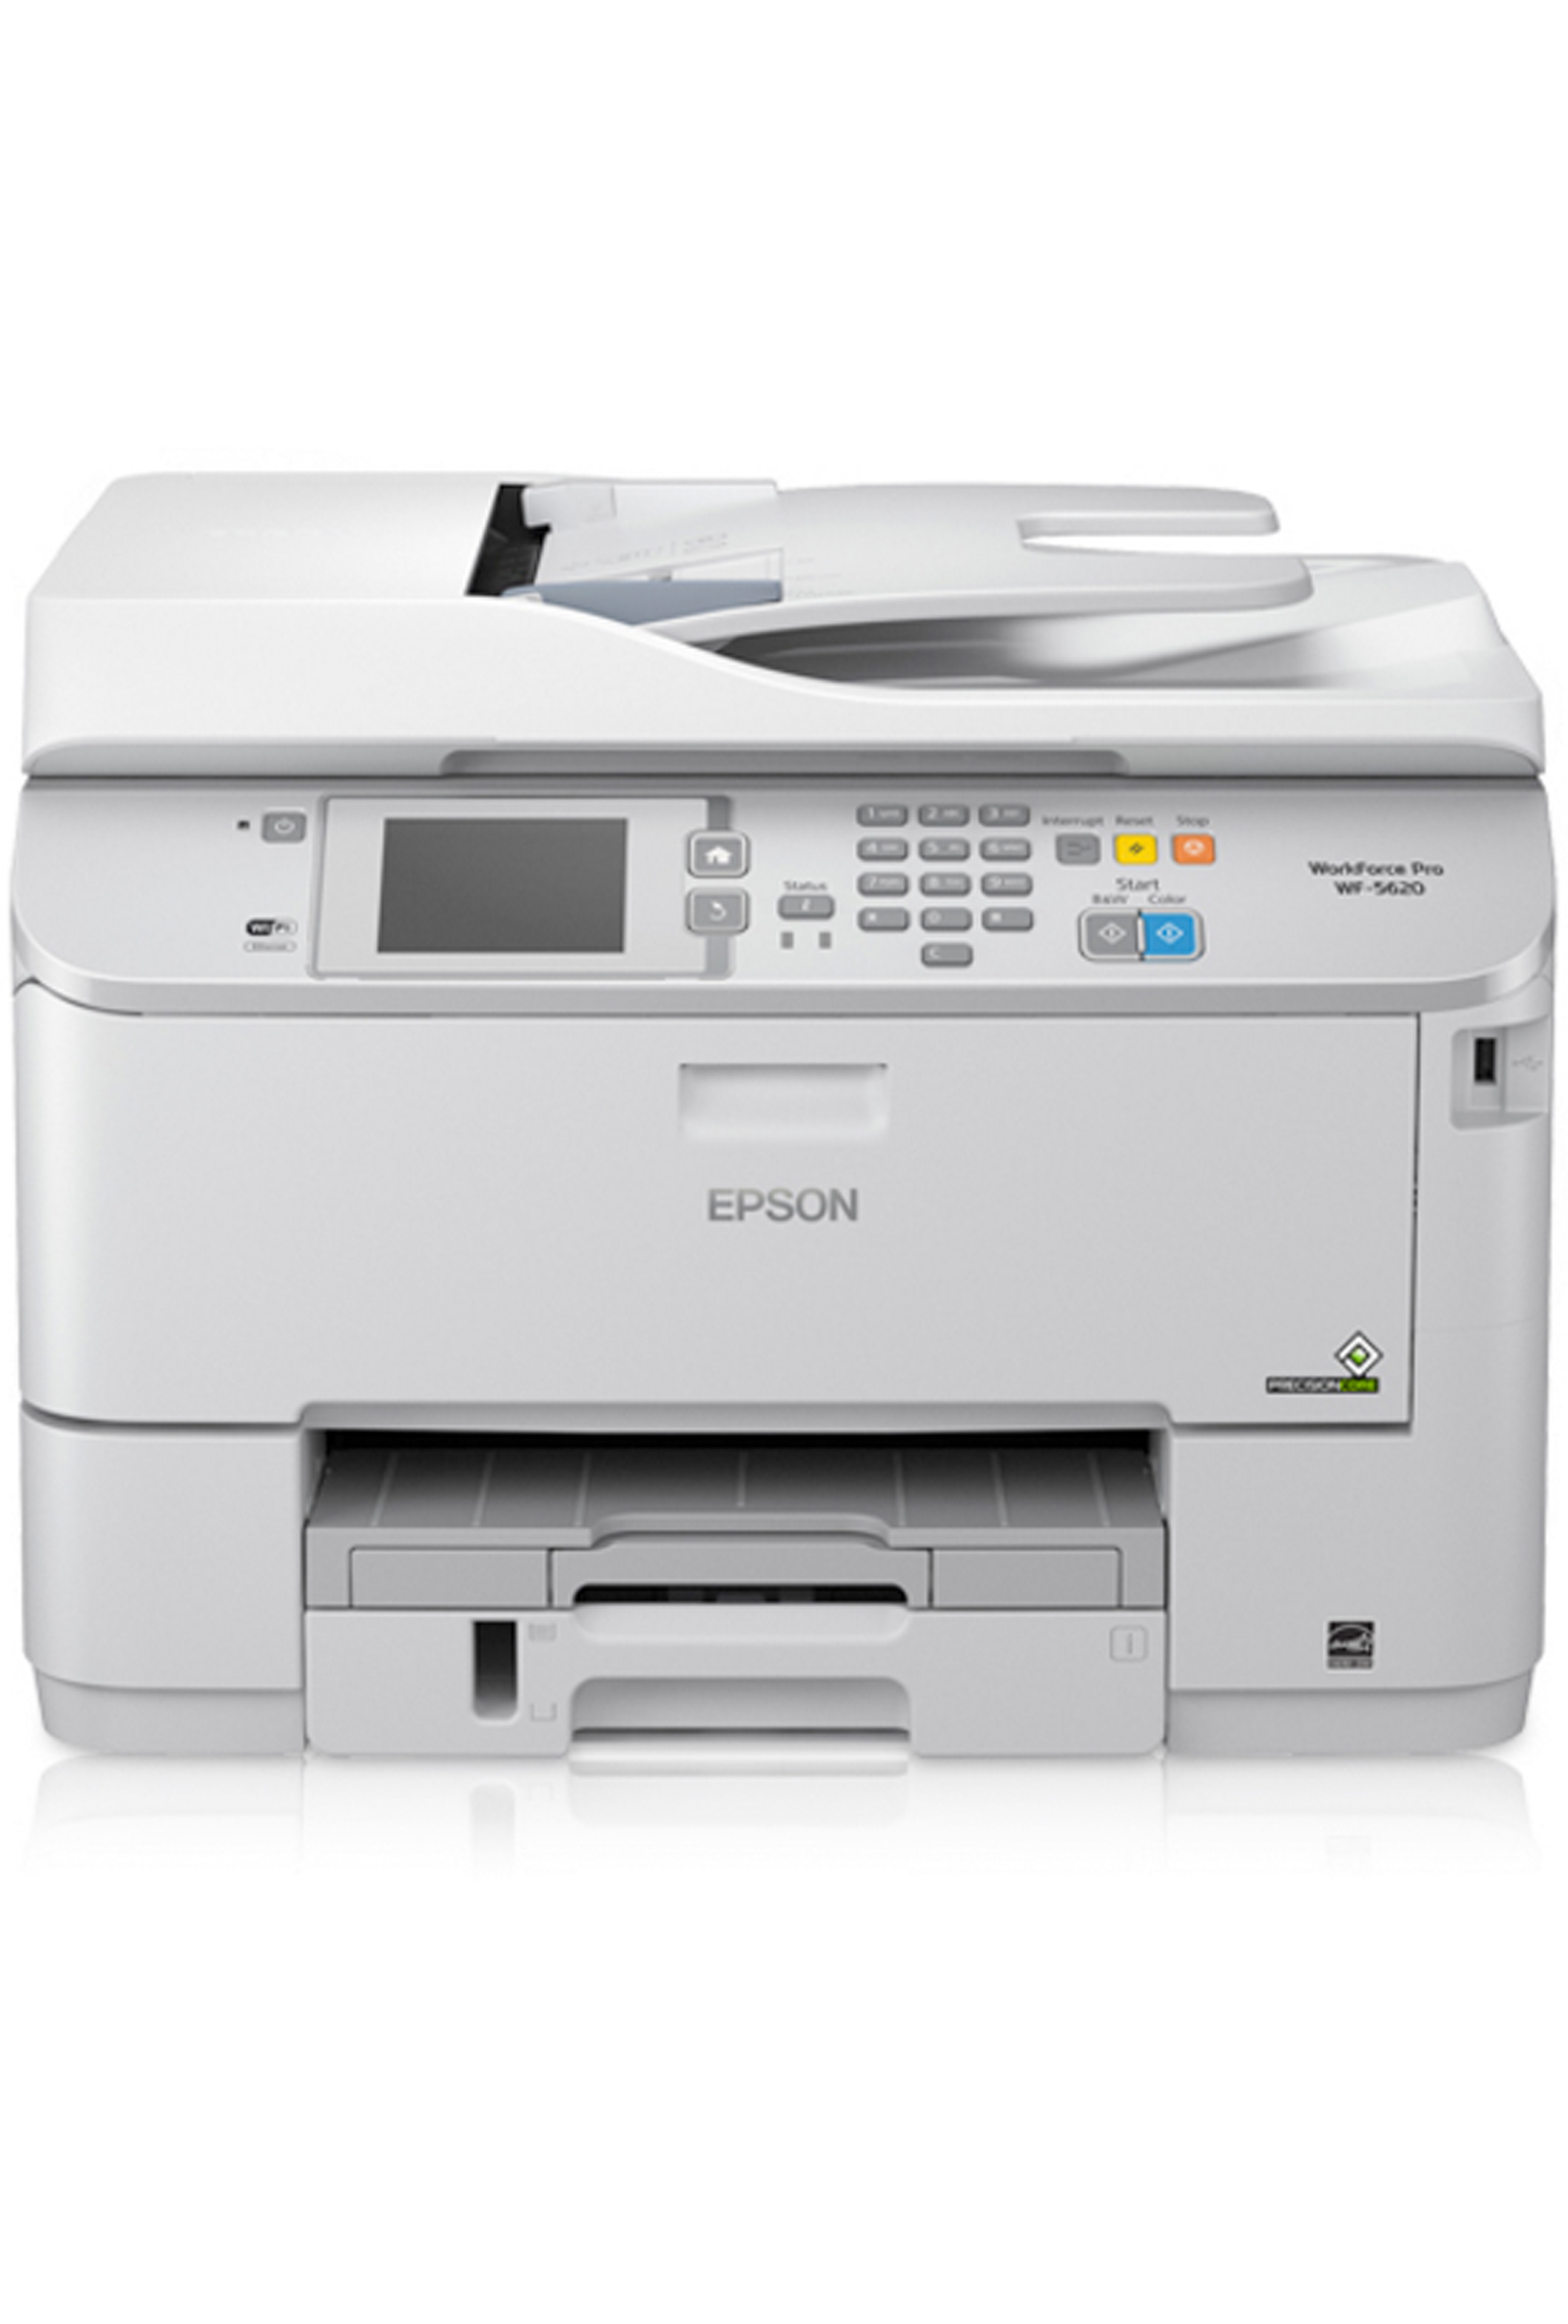 Epson WorkForce Pro WF-5620 Network Multifunction Color...